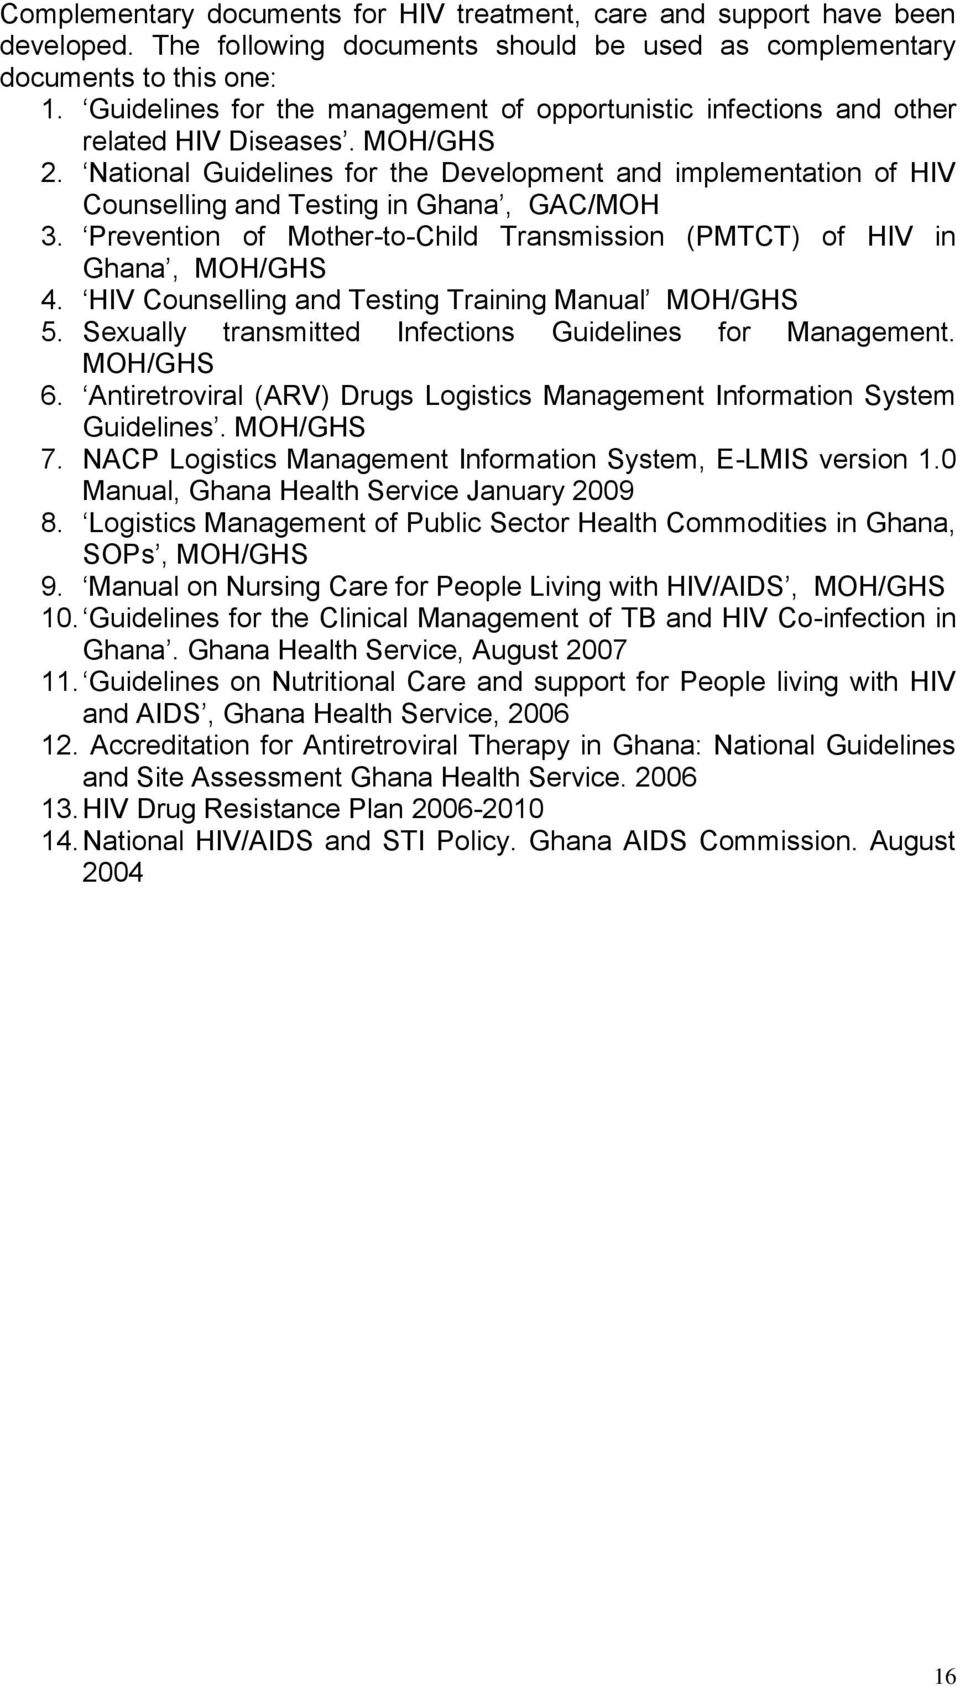 National Guidelines for the Development and implementation of HIV Counselling and Testing in Ghana, GAC/MOH 3. Prevention of Mother-to-Child Transmission (PMTCT) of HIV in Ghana, MOH/GHS 4.